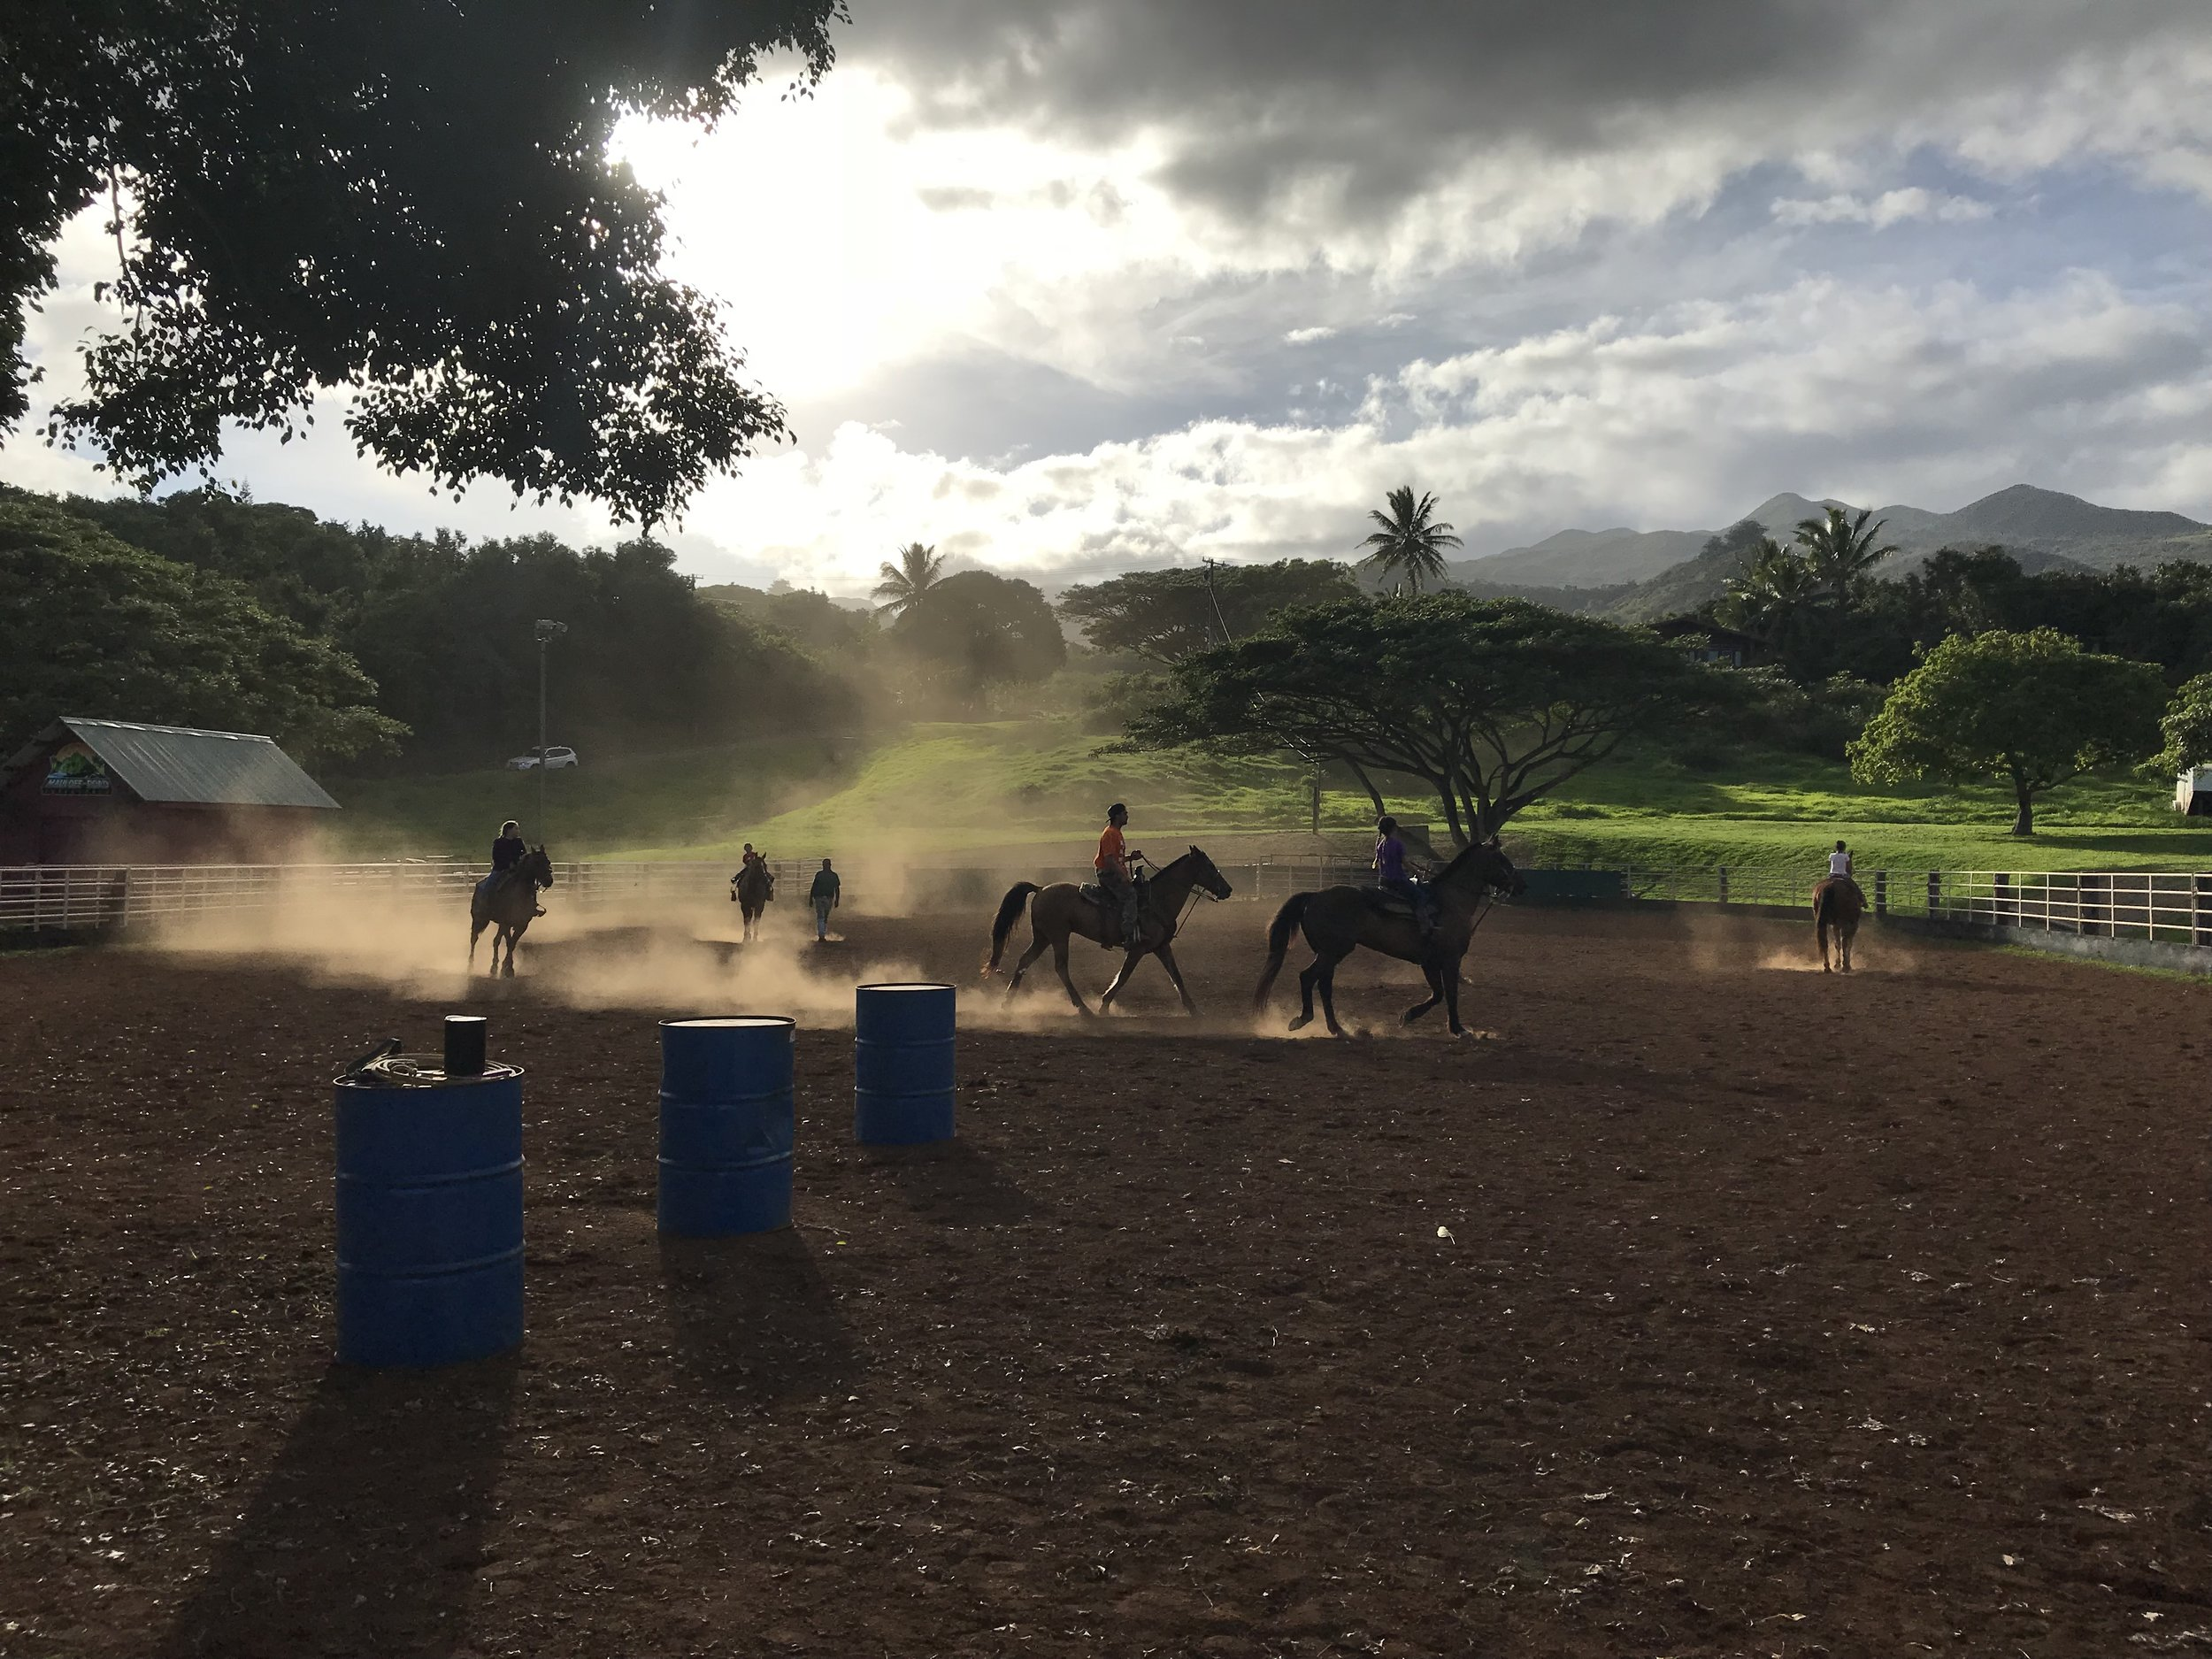 Future generations of cowboys practicing roping at Hana Ranch.